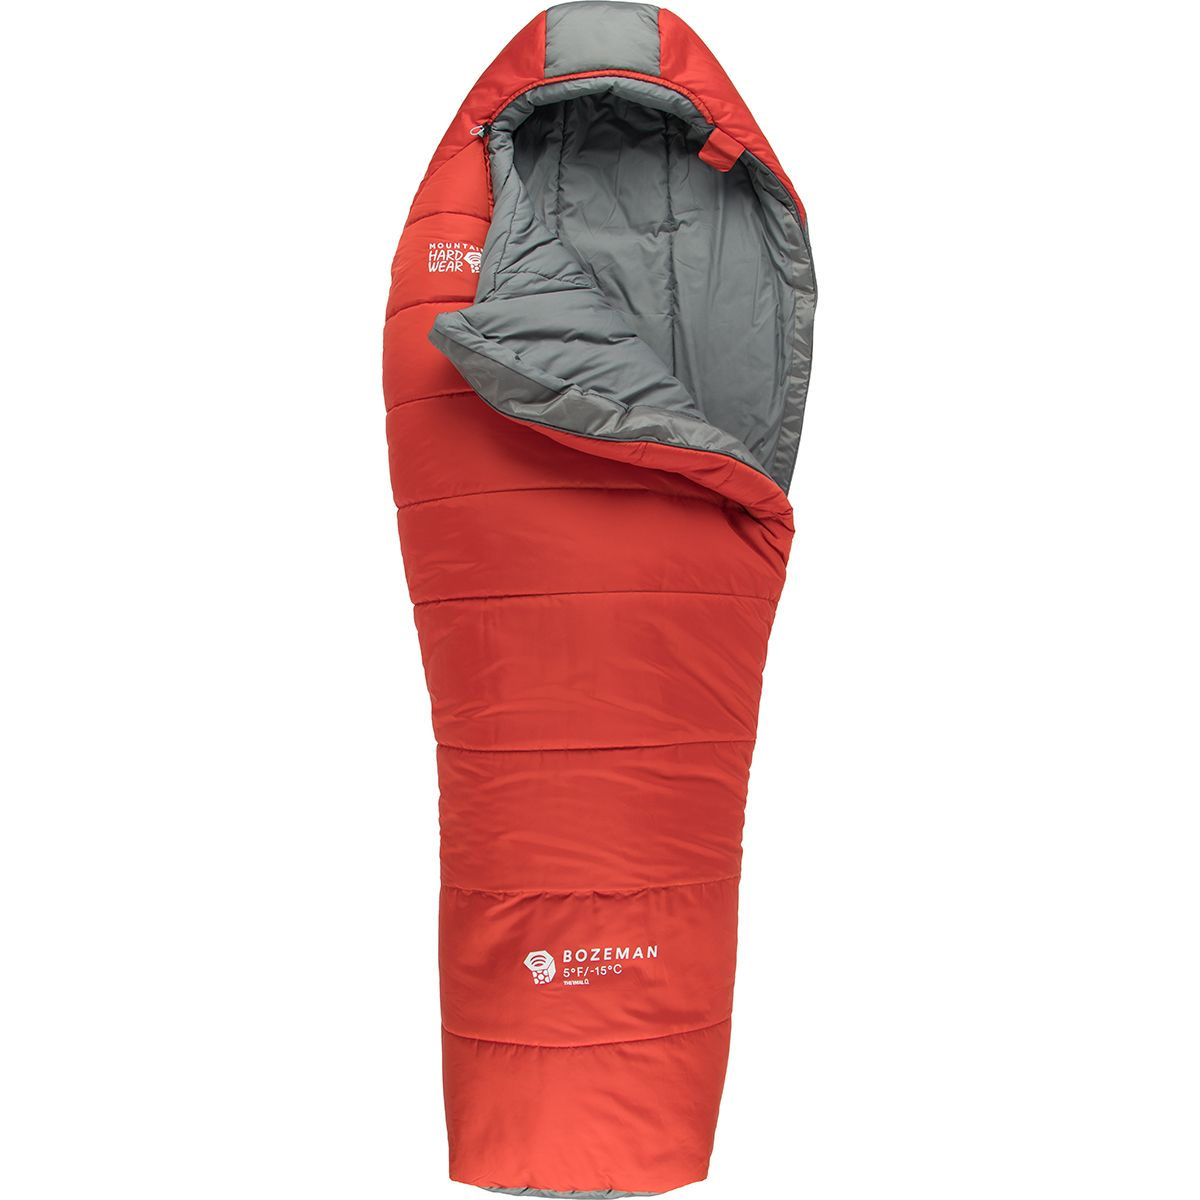 photo: Mountain Hardwear Men's Bozeman Torch 0 3-season synthetic sleeping bag